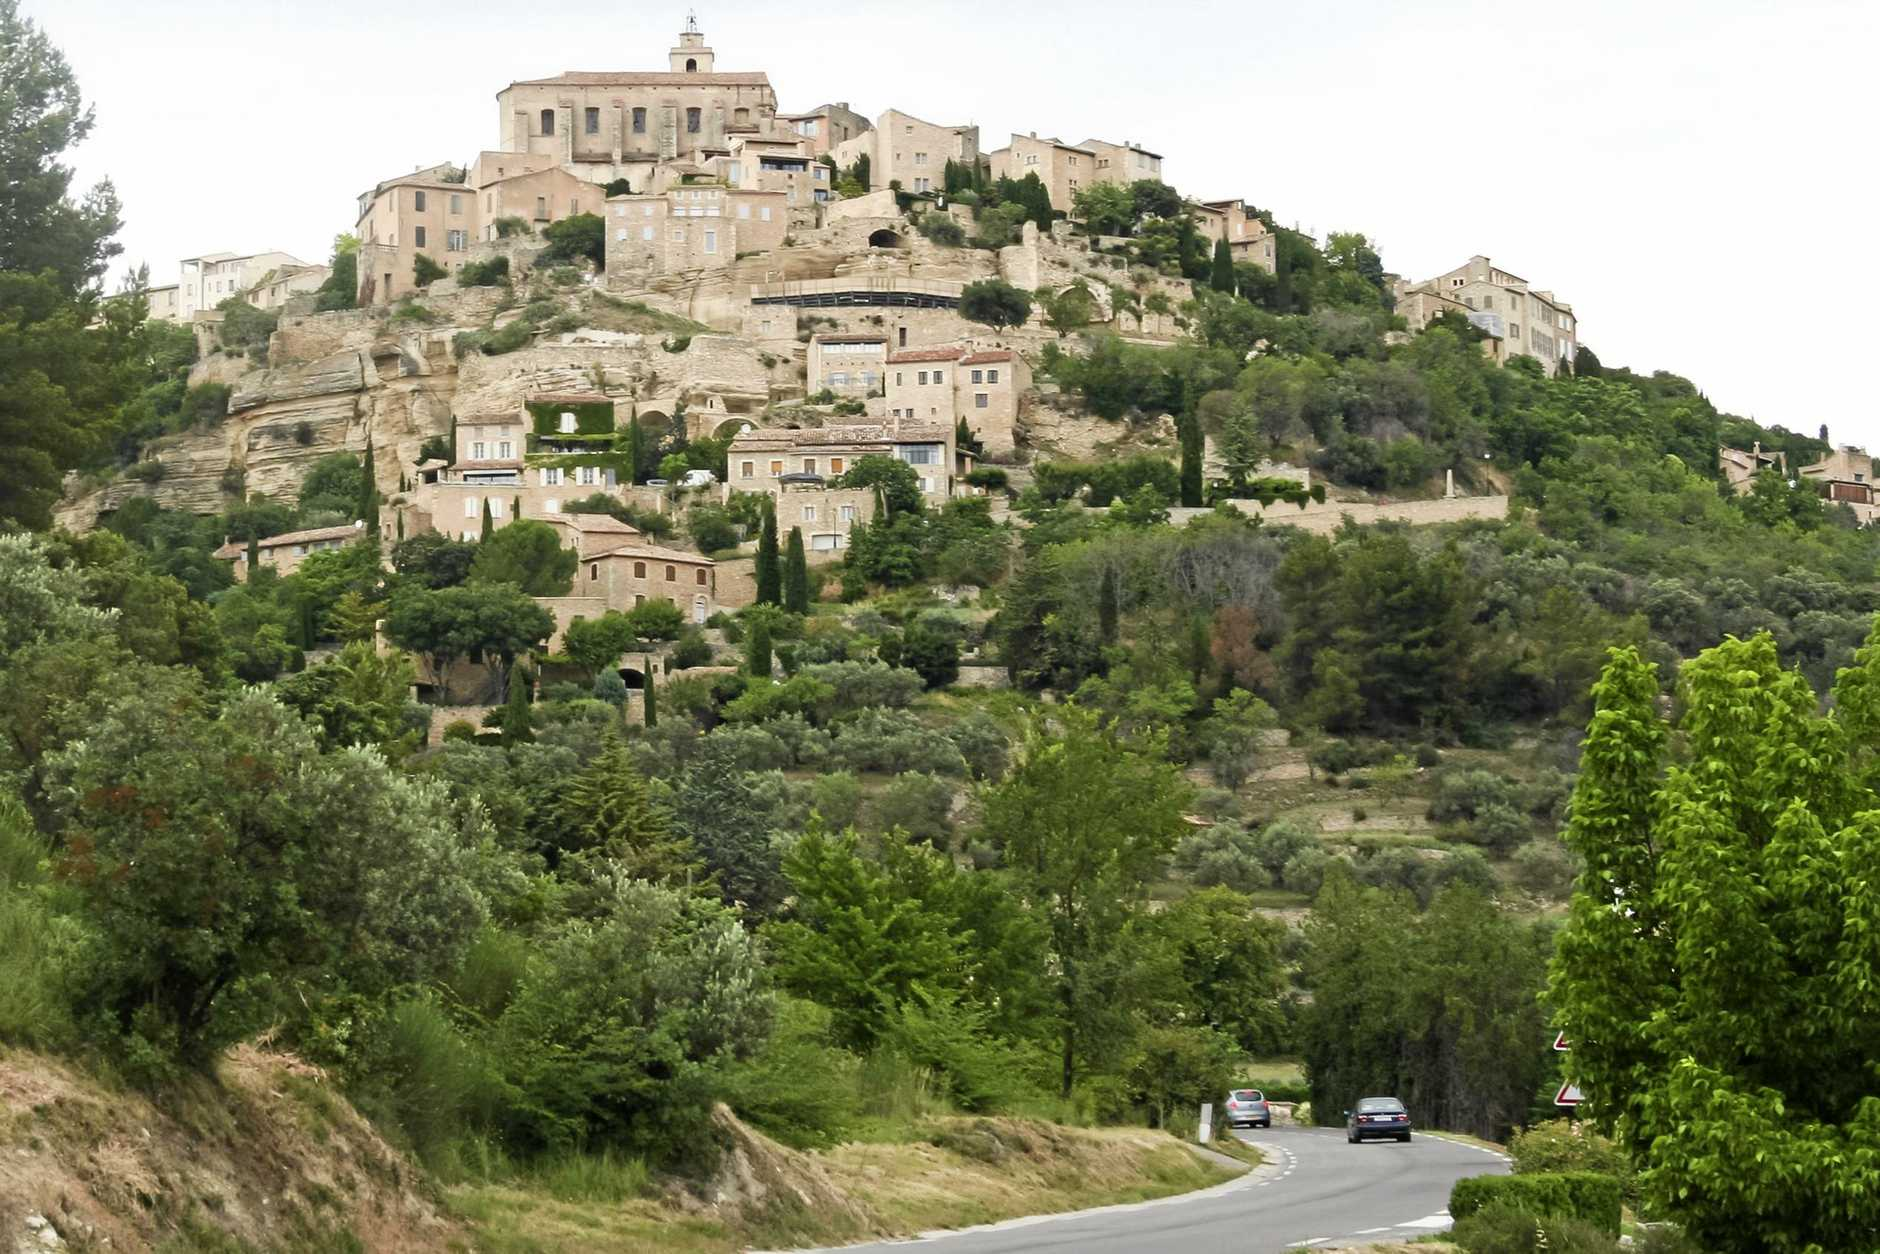 Picasso spent the last 12 years of his life in the small, medieval village of Mougins.